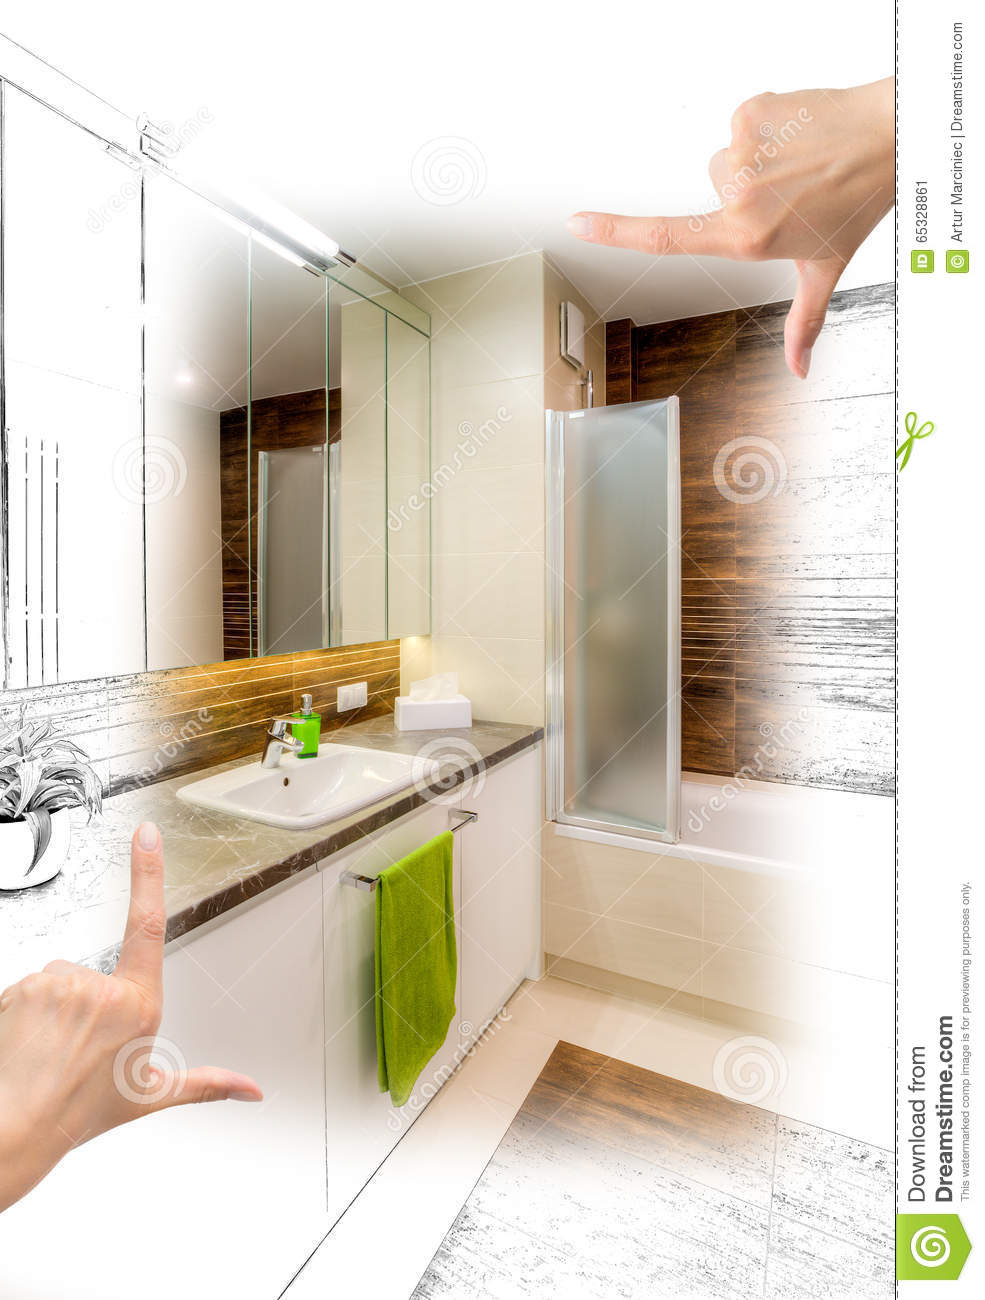 female hands framing custom bathroom design. stock illustration